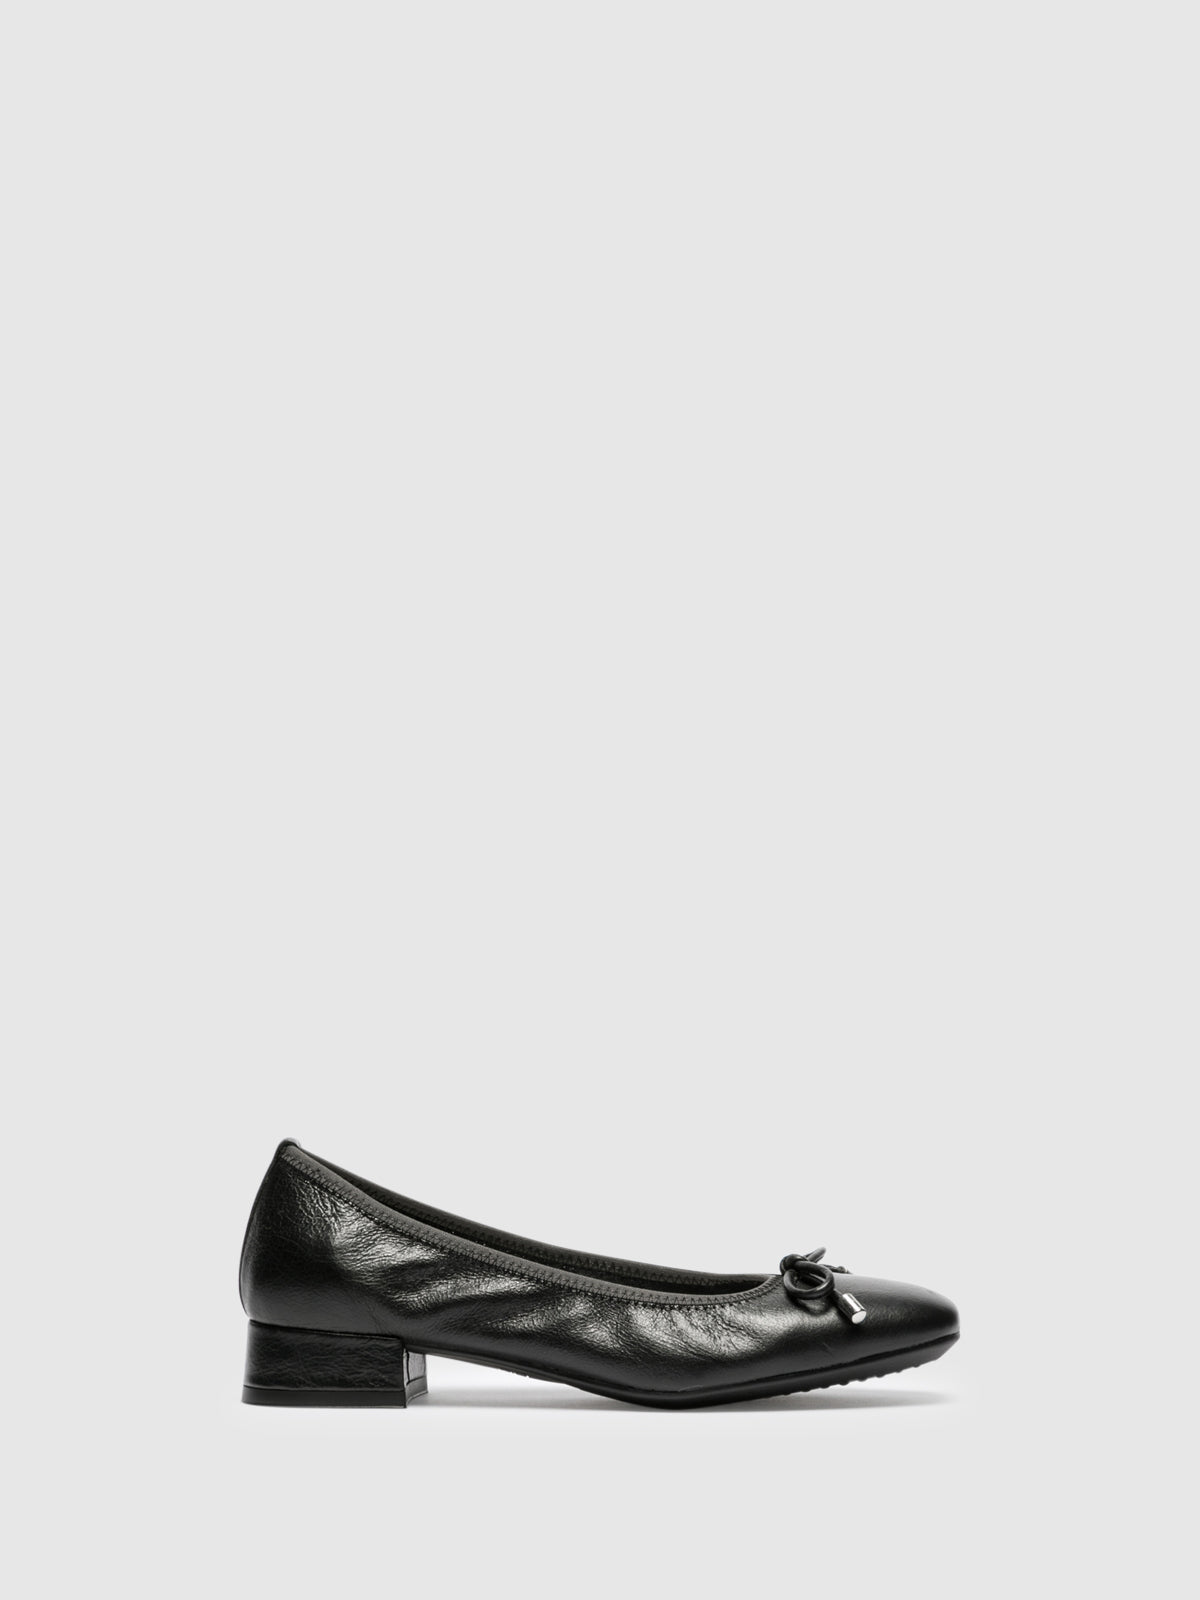 The Flexx Black Square Toe Ballerinas